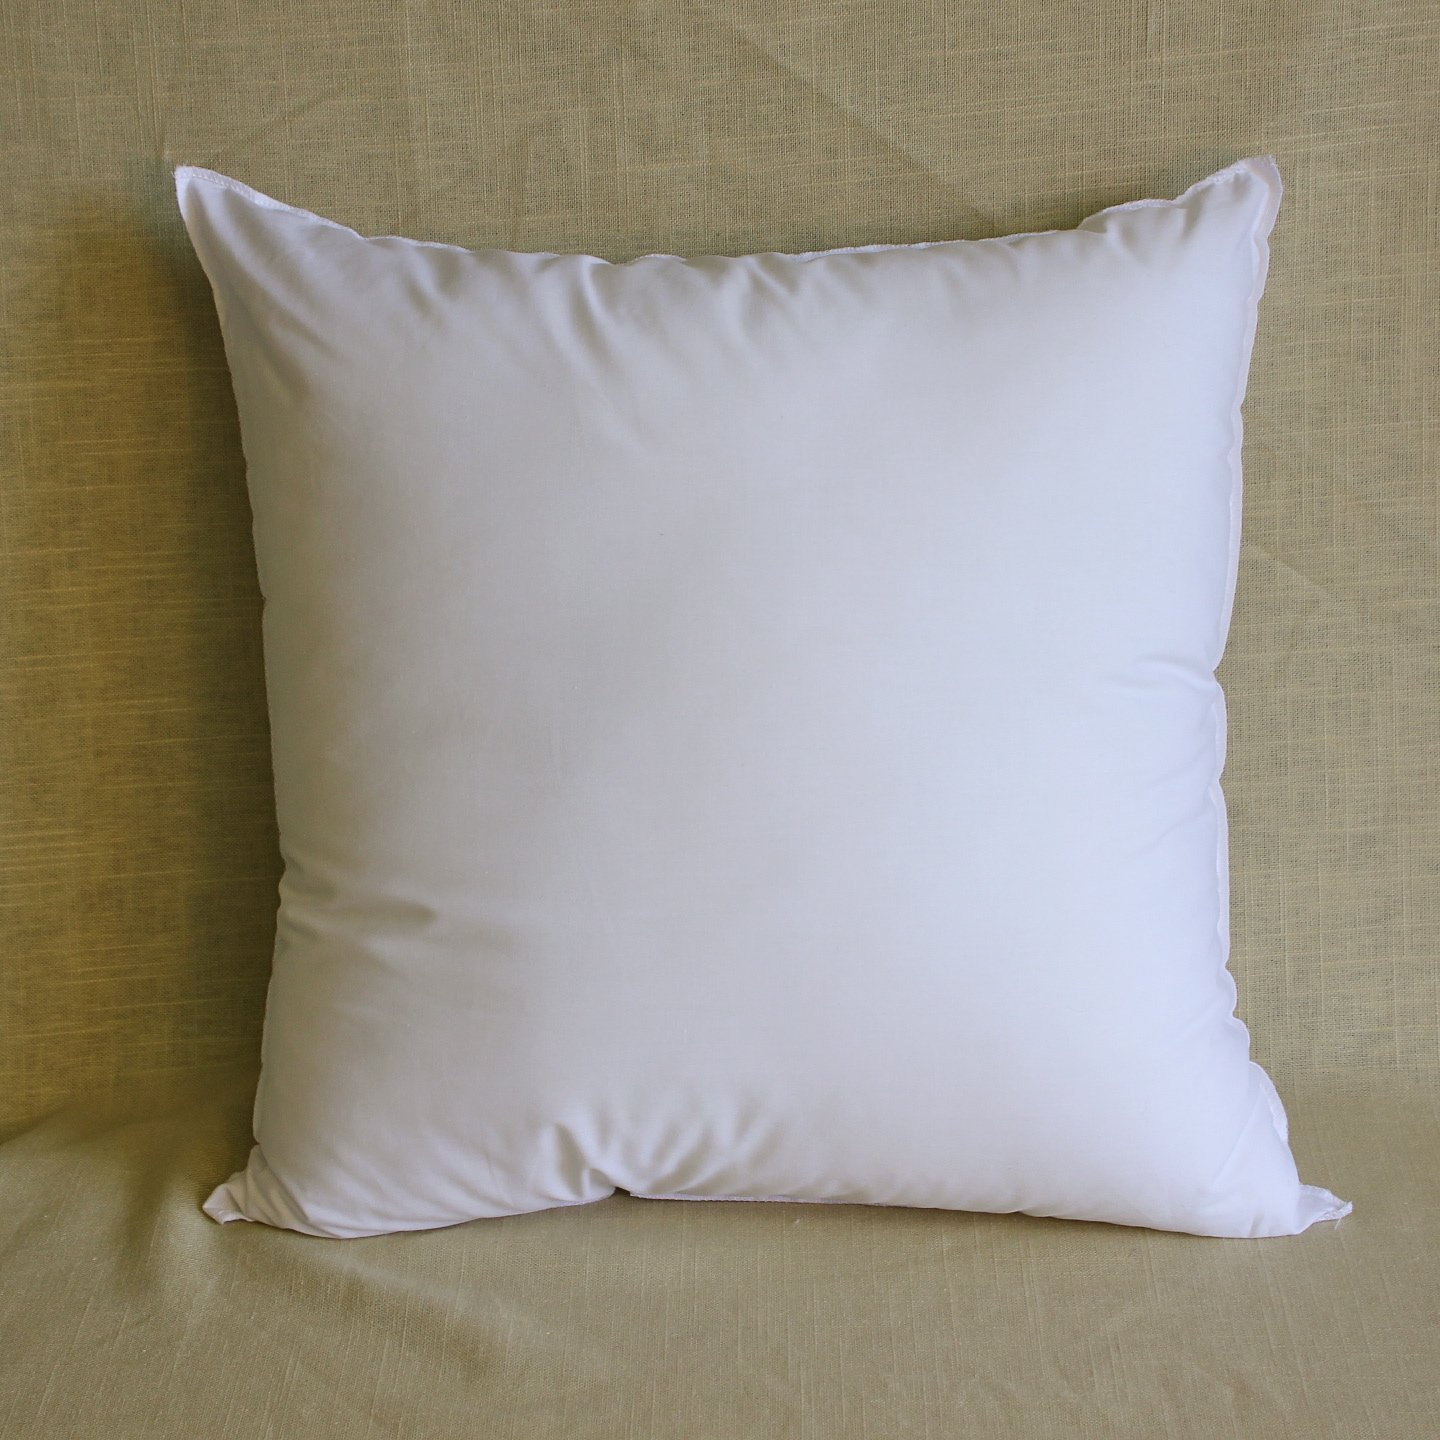 Marvellous Foam Pillow Inserts Polyester Square Pillow Forms Foam Pillow Inserts Images New Pillow Insert Form 18 X 18 Pillow Inserts Walmart 18x18 Pillow Inserts By Bulk decor 18x18 Pillow Insert